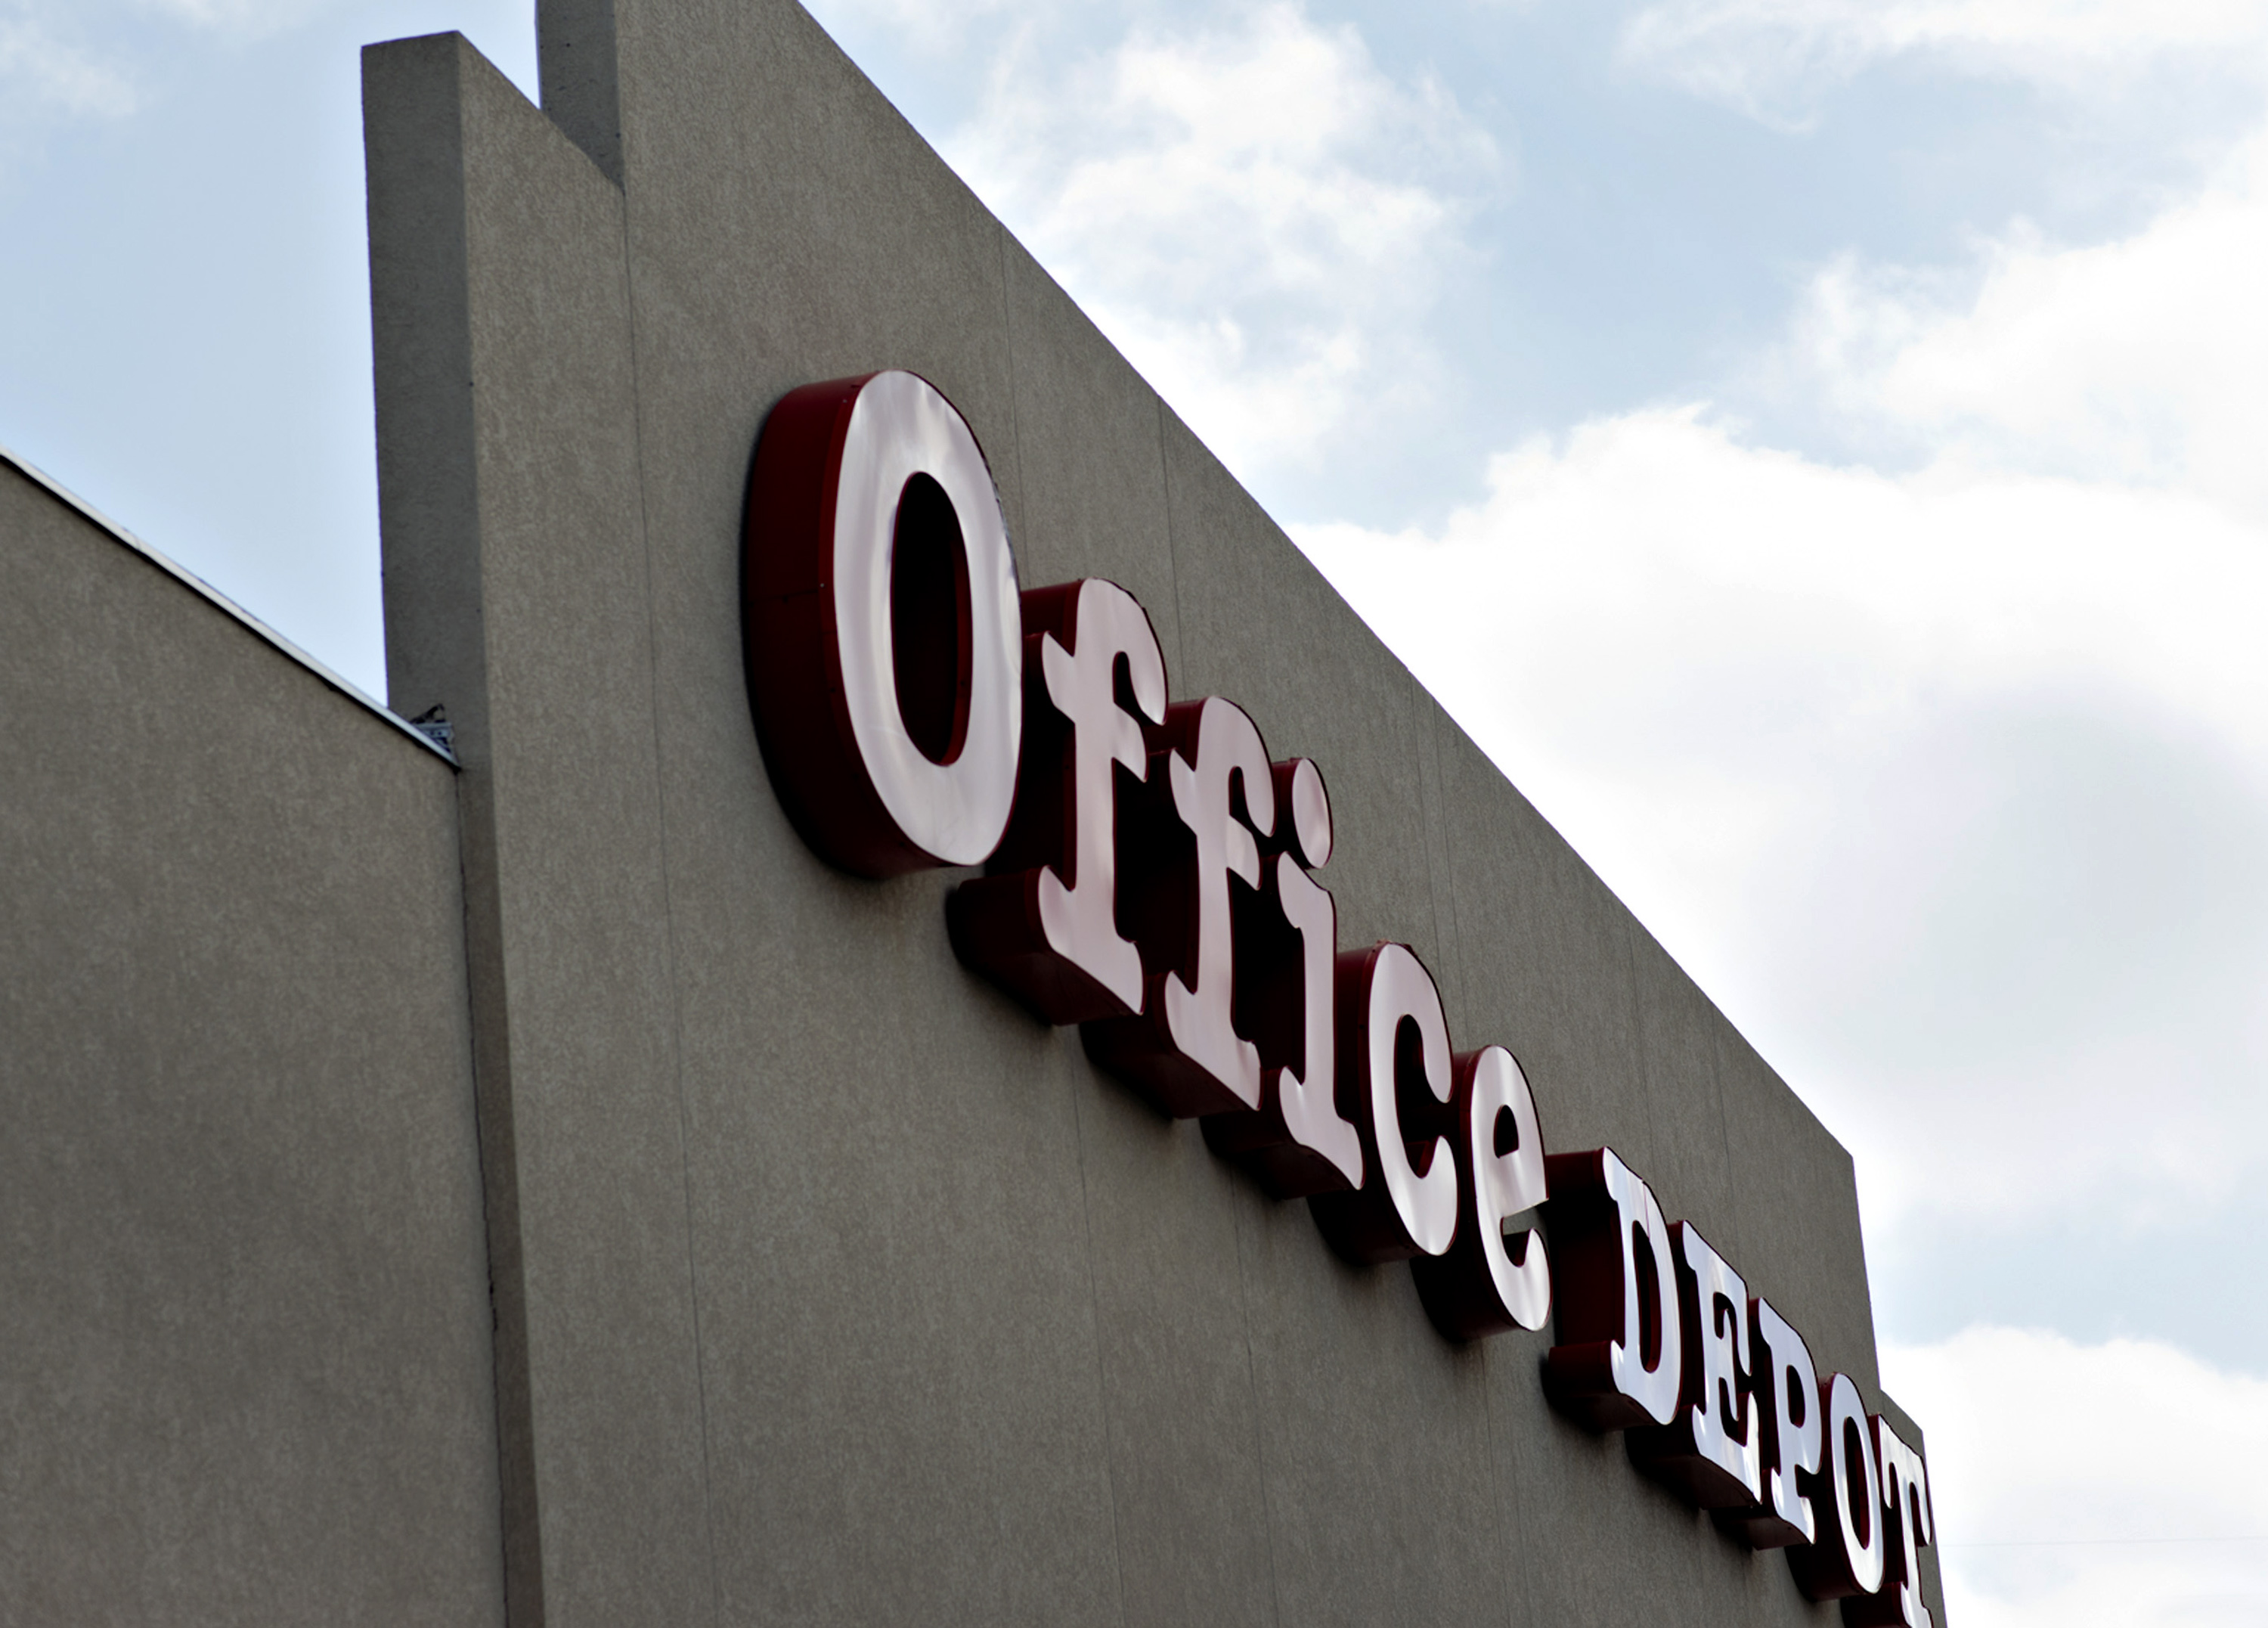 An Office Depot store stands in Peoria, Illinois, U.S., on Tuesday, Feb. 19, 2013.